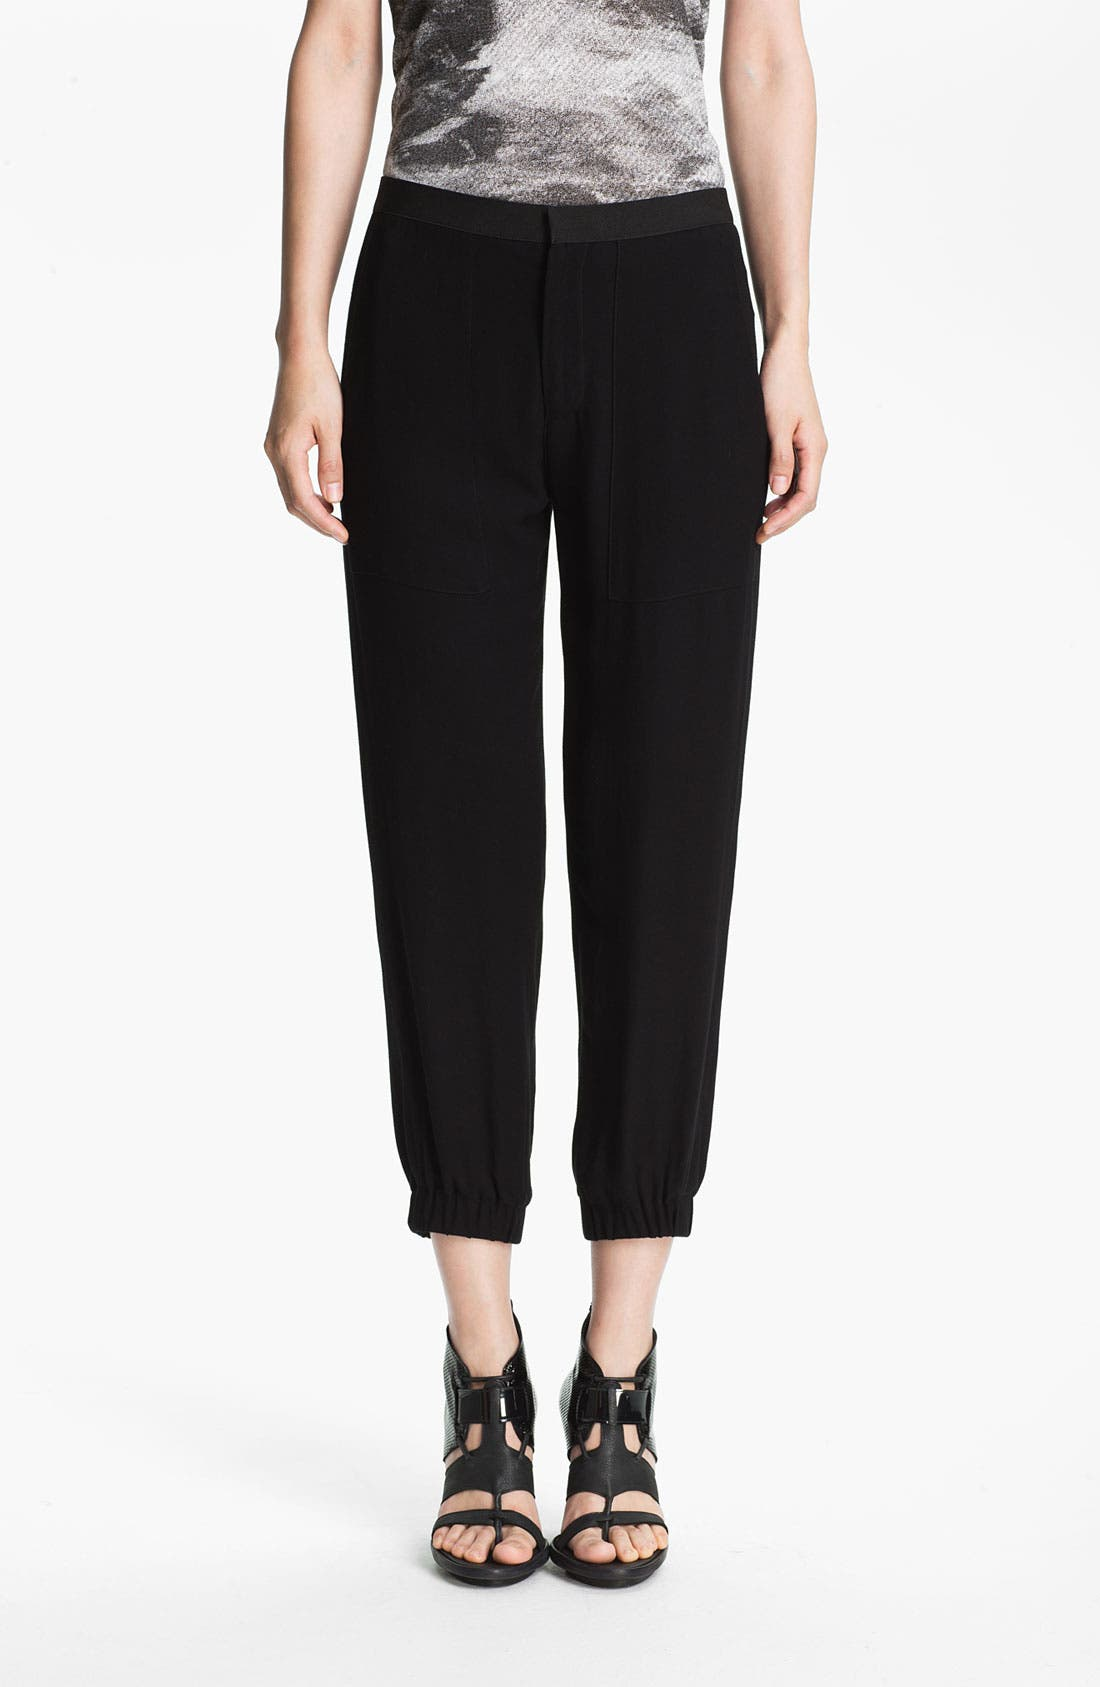 Main Image - HELMUT Helmut Lang 'Flash' Draped Pants